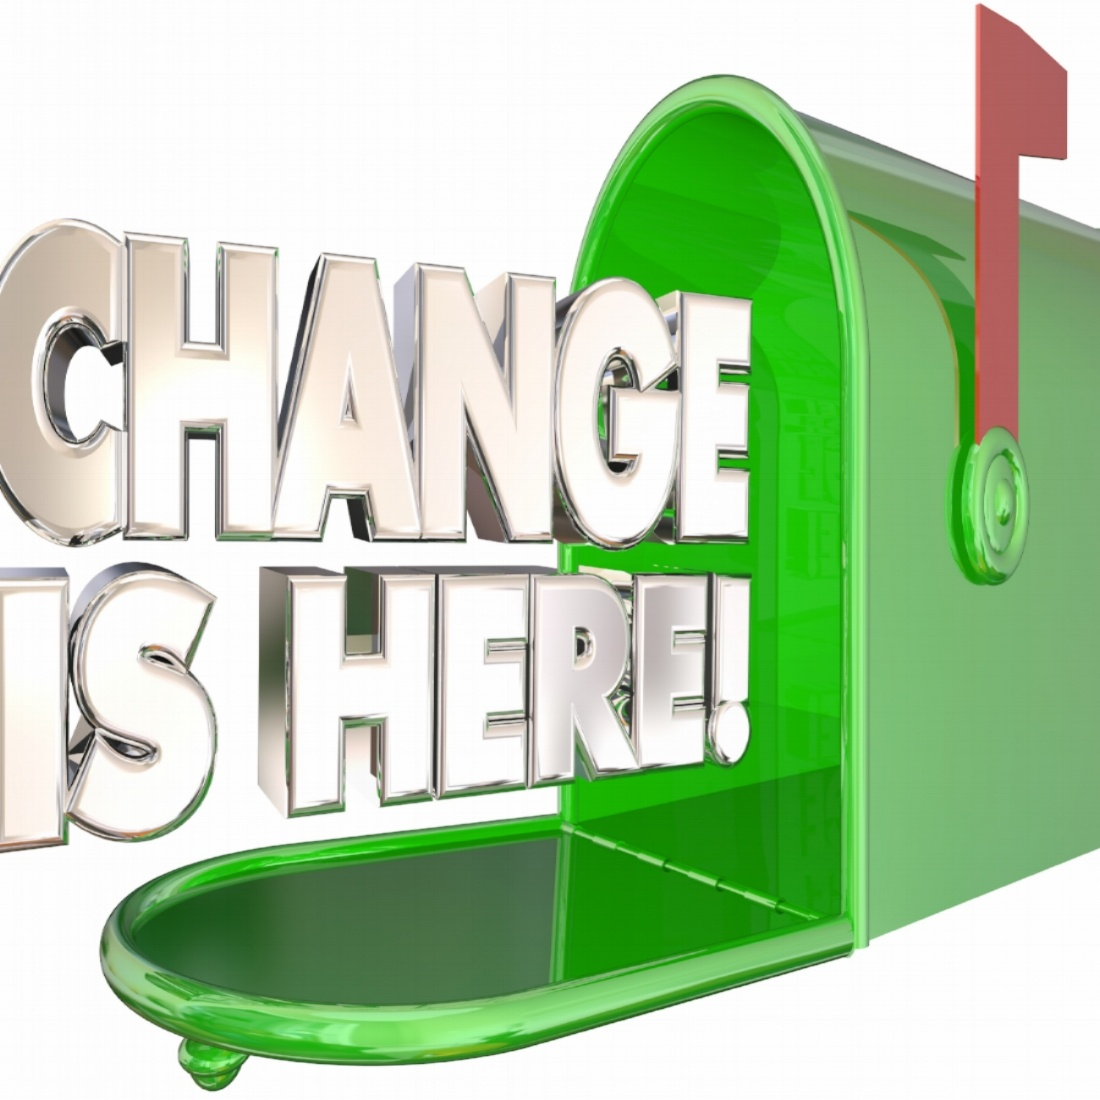 mail change is here-036233-edited